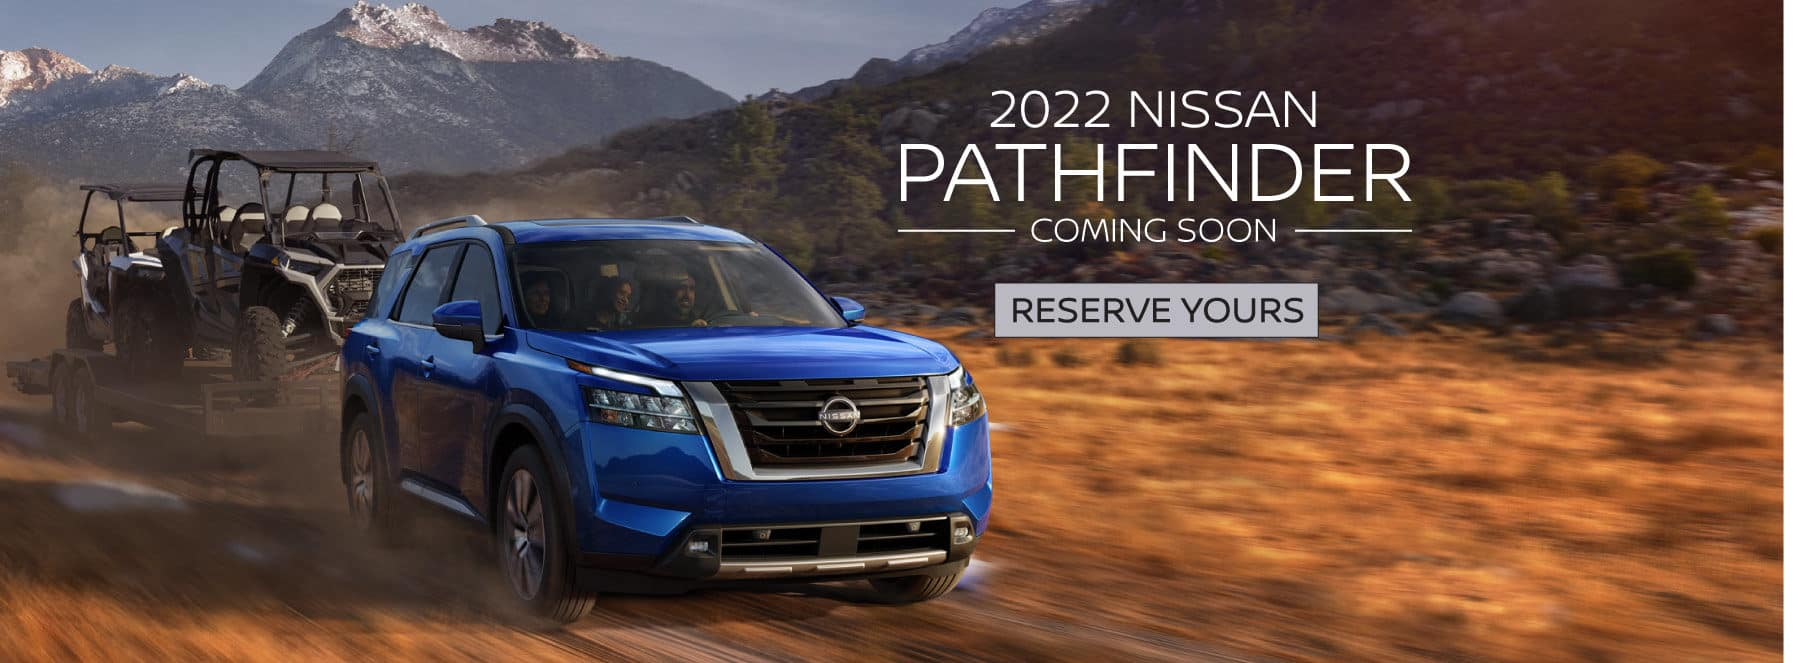 2022 Nissan Pathfnder Coming Soon. Reserve Yours.